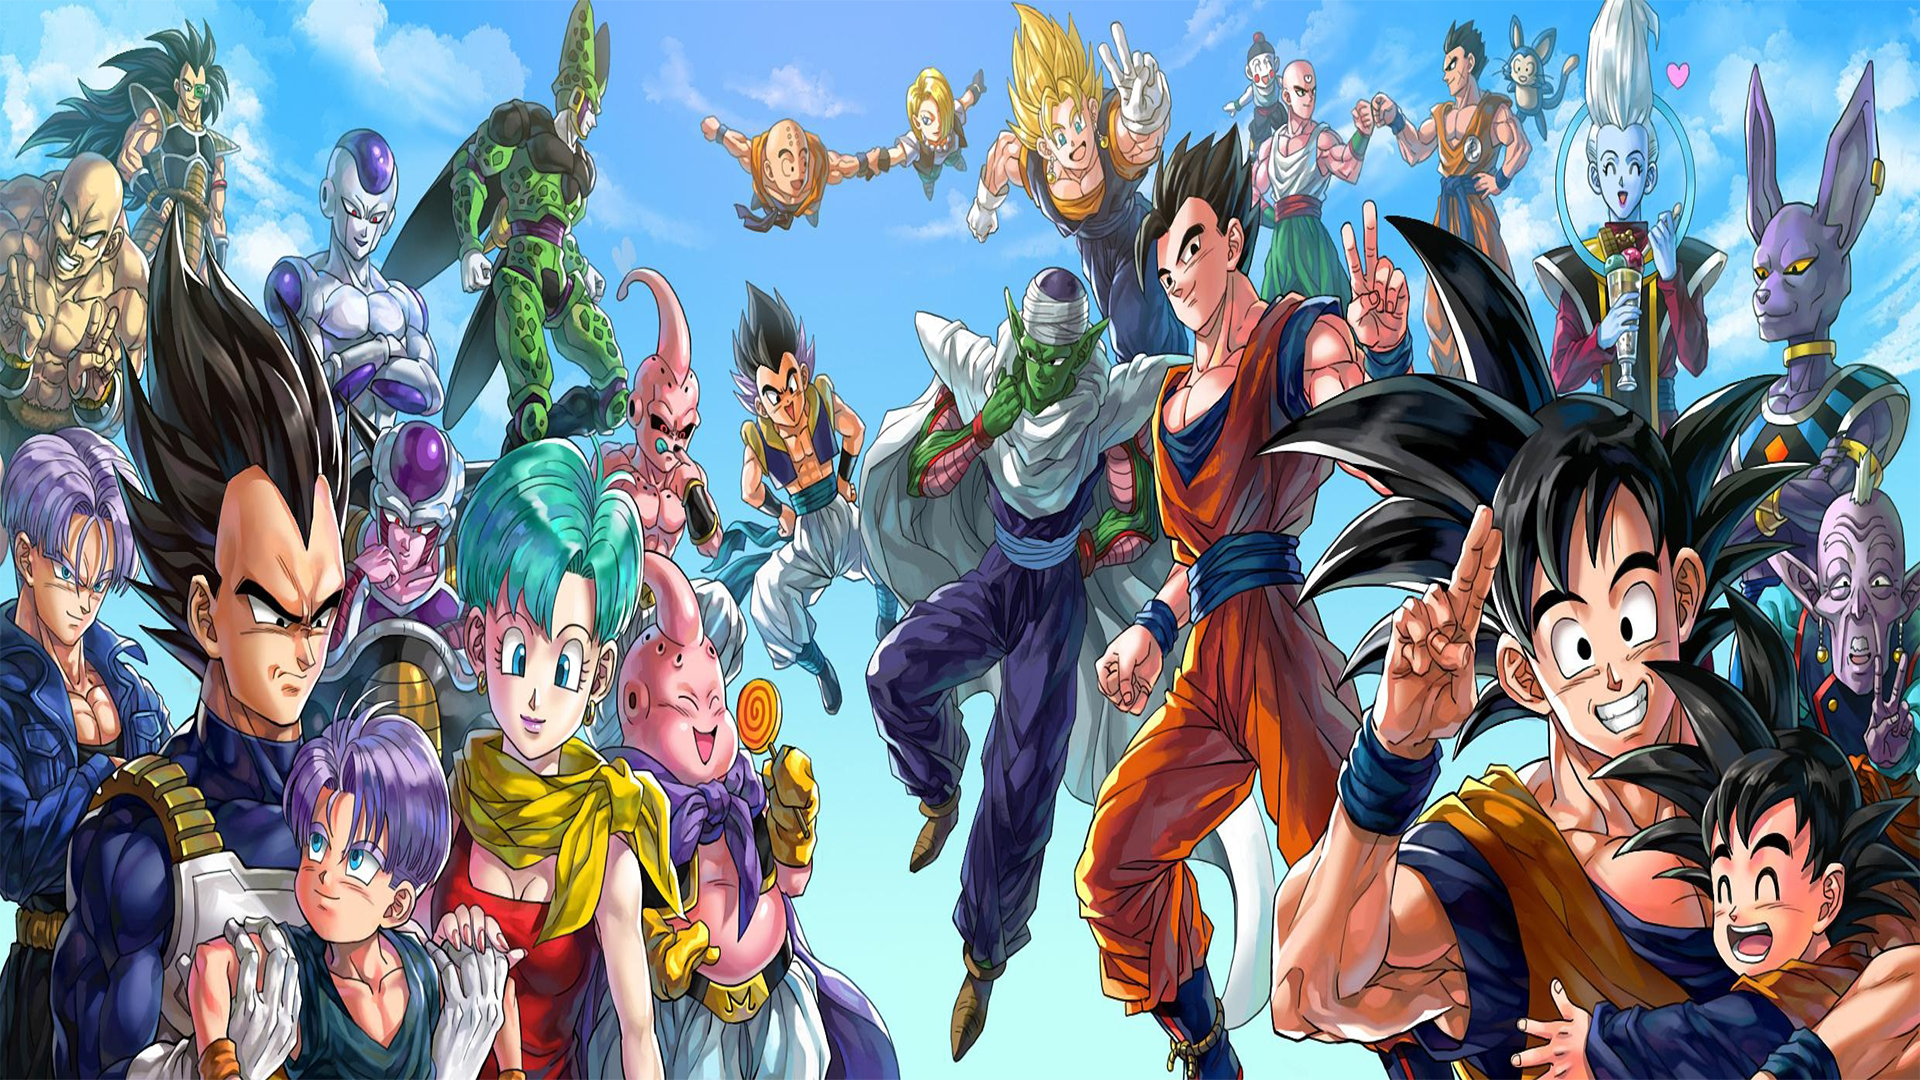 [1920x1080] Dragon Ball Characters Need iPhone 6S Plus